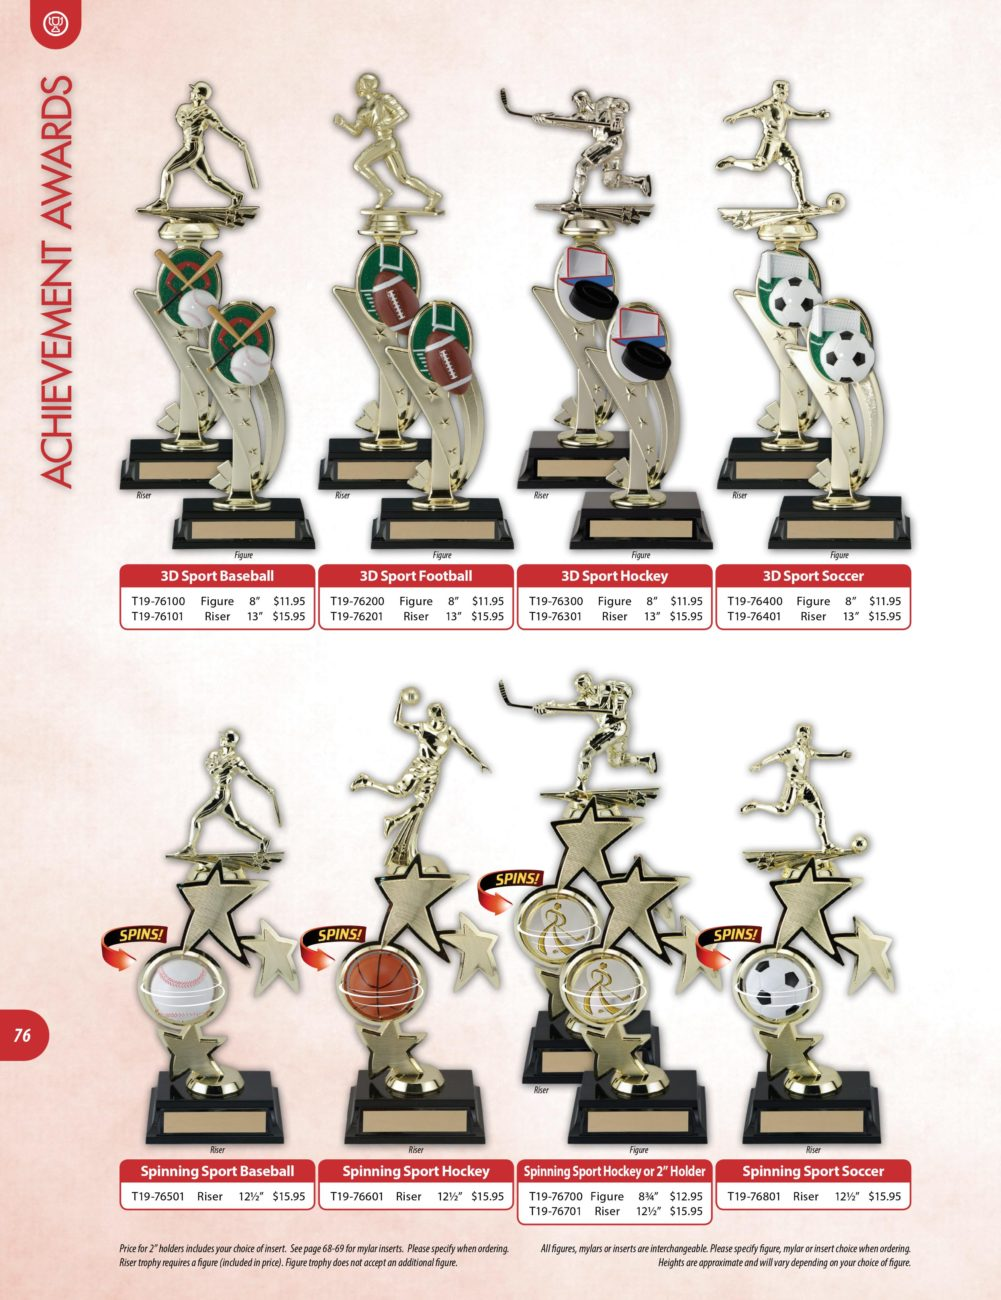 Trophies - Olympic Trophies